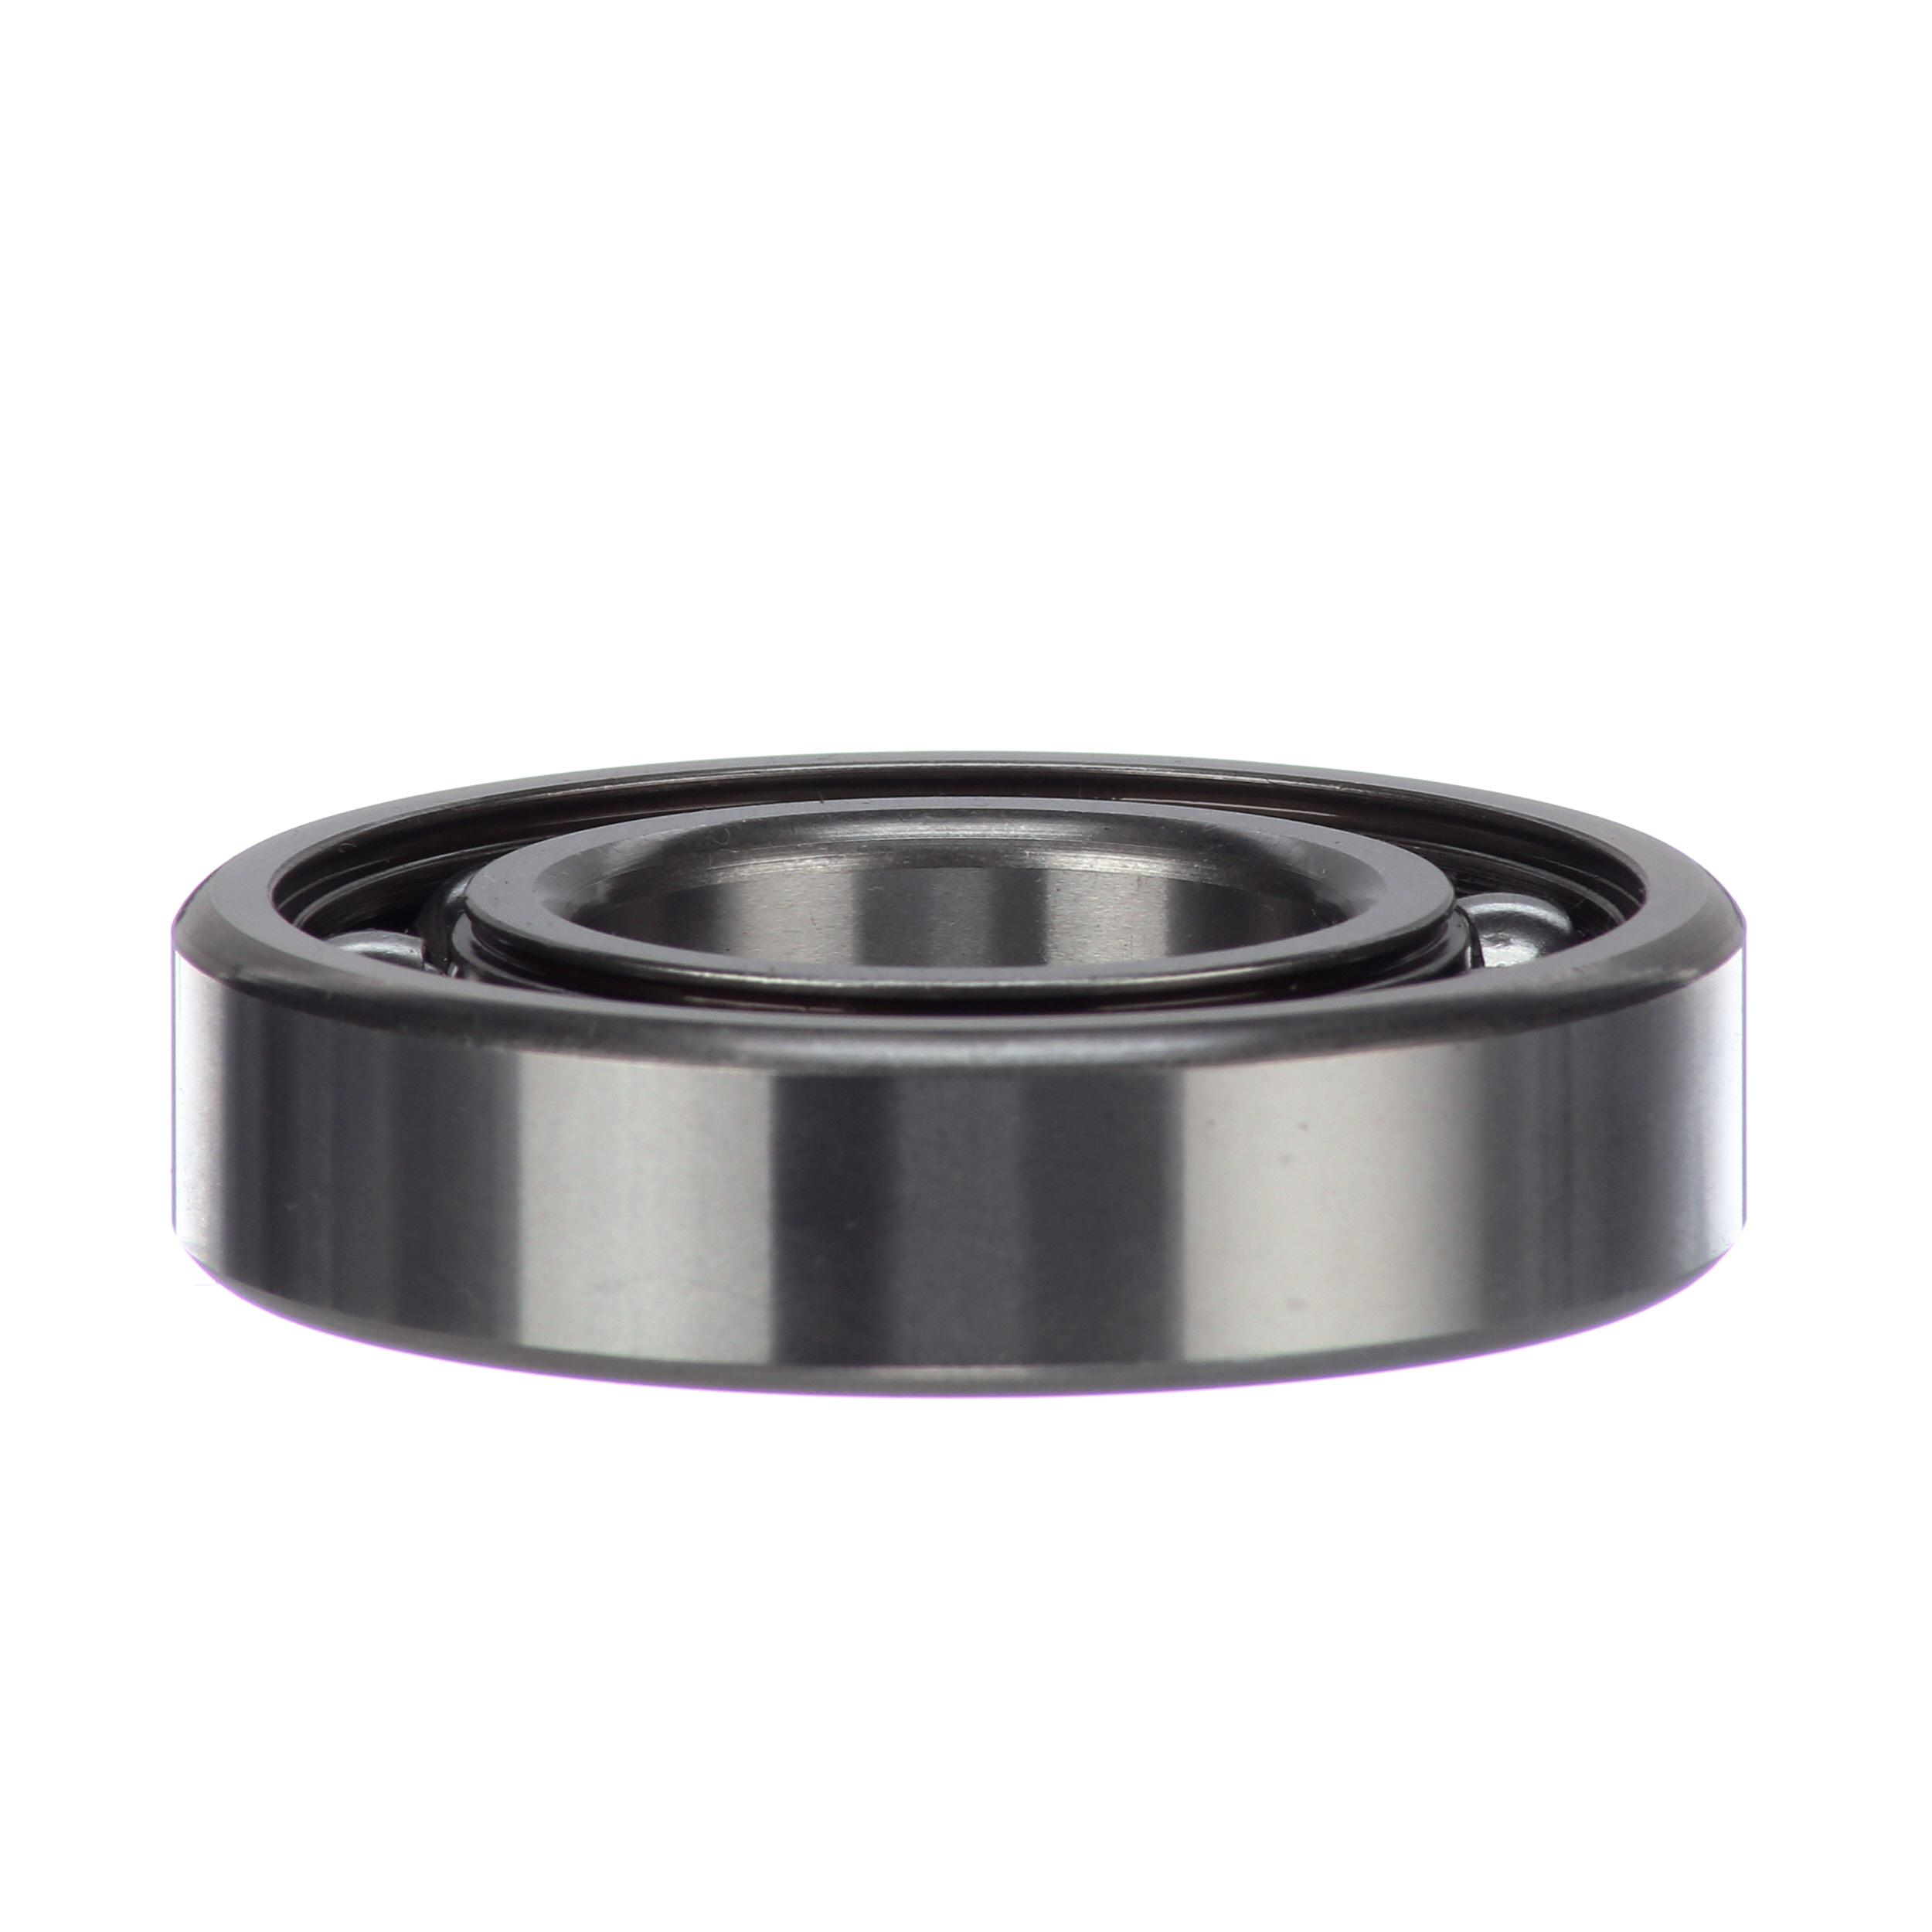 HOBART BALL BEARING